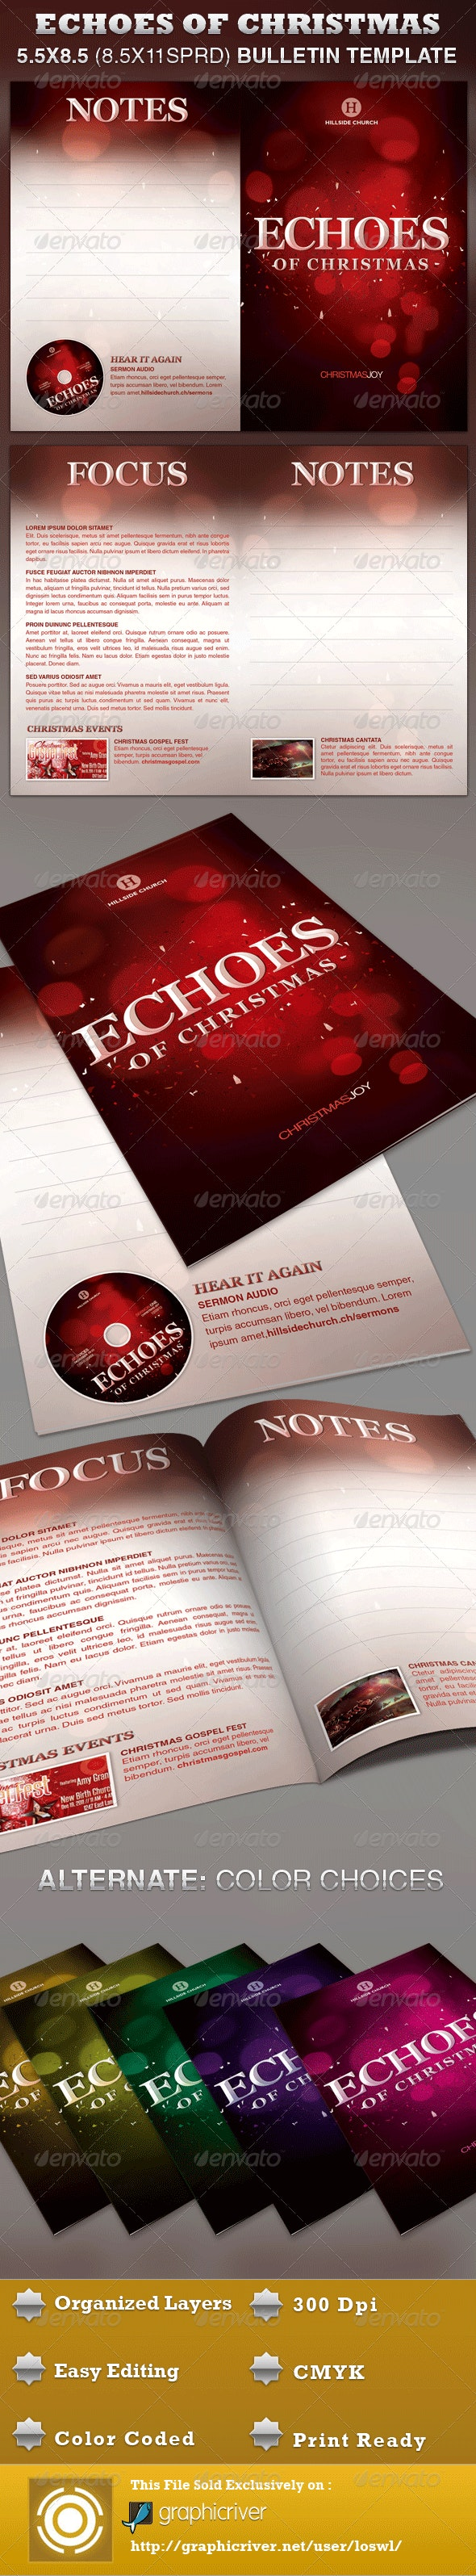 Echoes of Christmas Church Bulletin Template - Informational Brochures